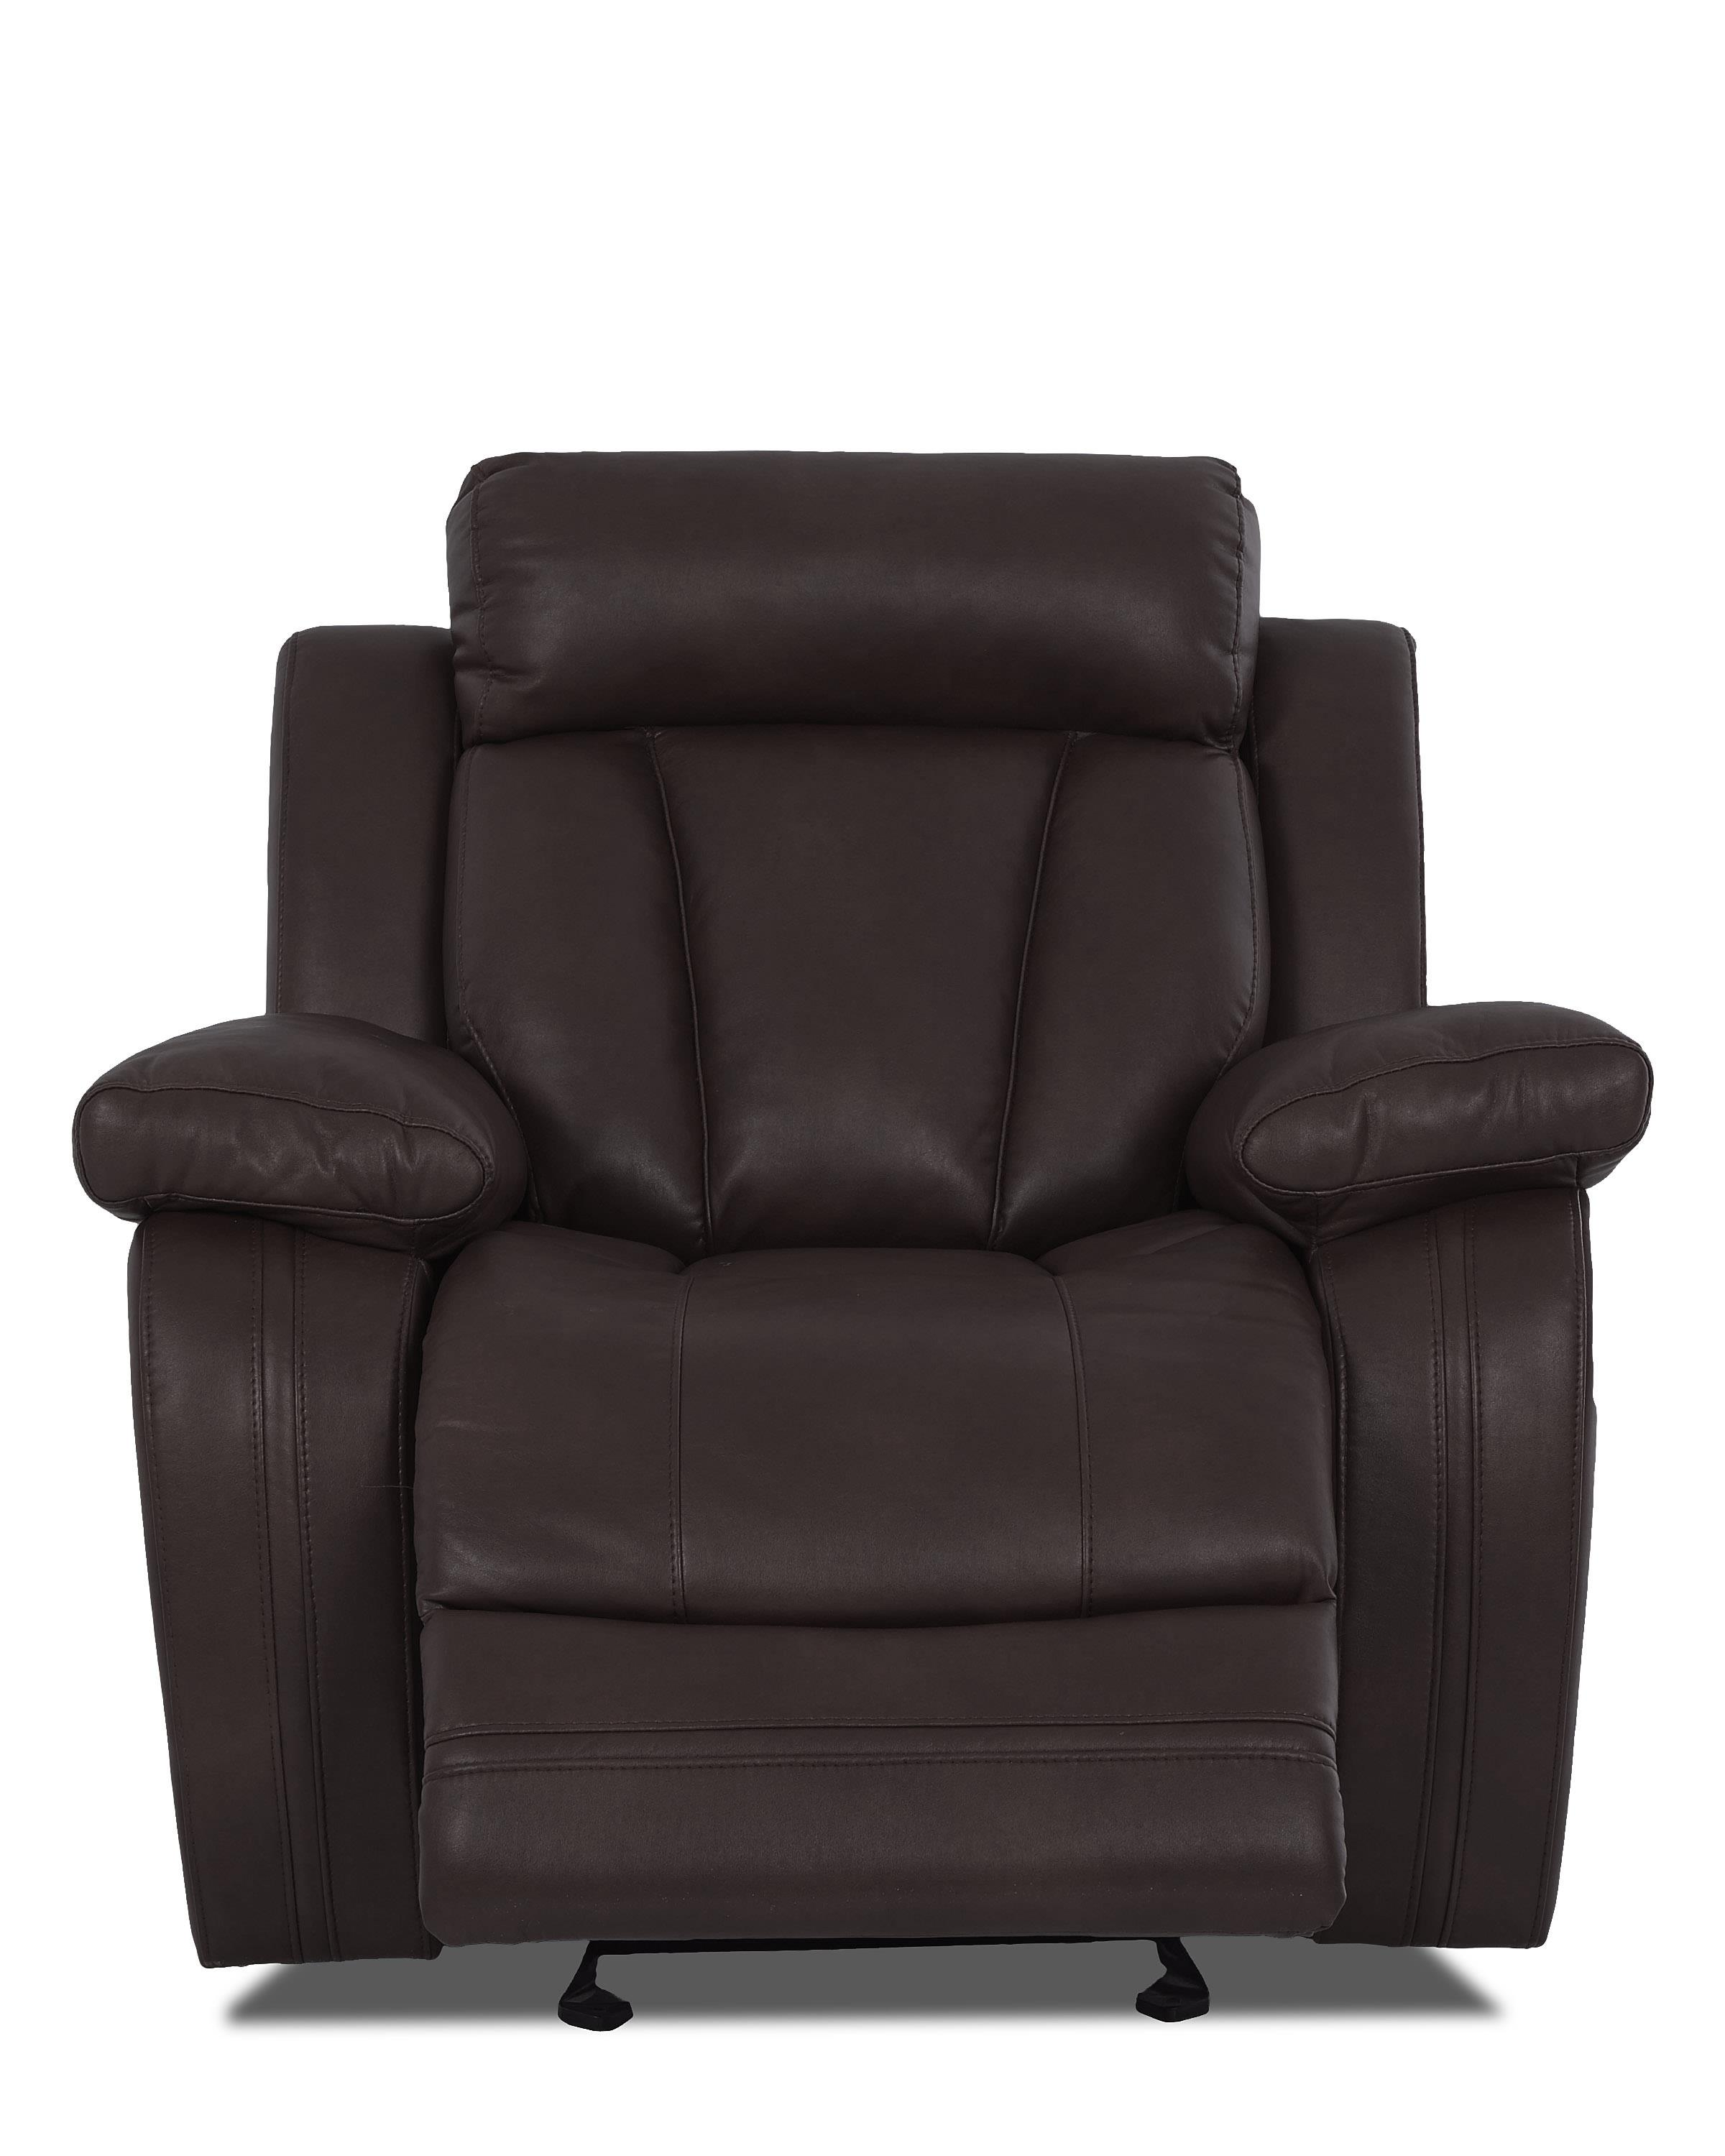 Atticus-US Gliding Recliner Chair by Klaussner International at Lagniappe Home Store